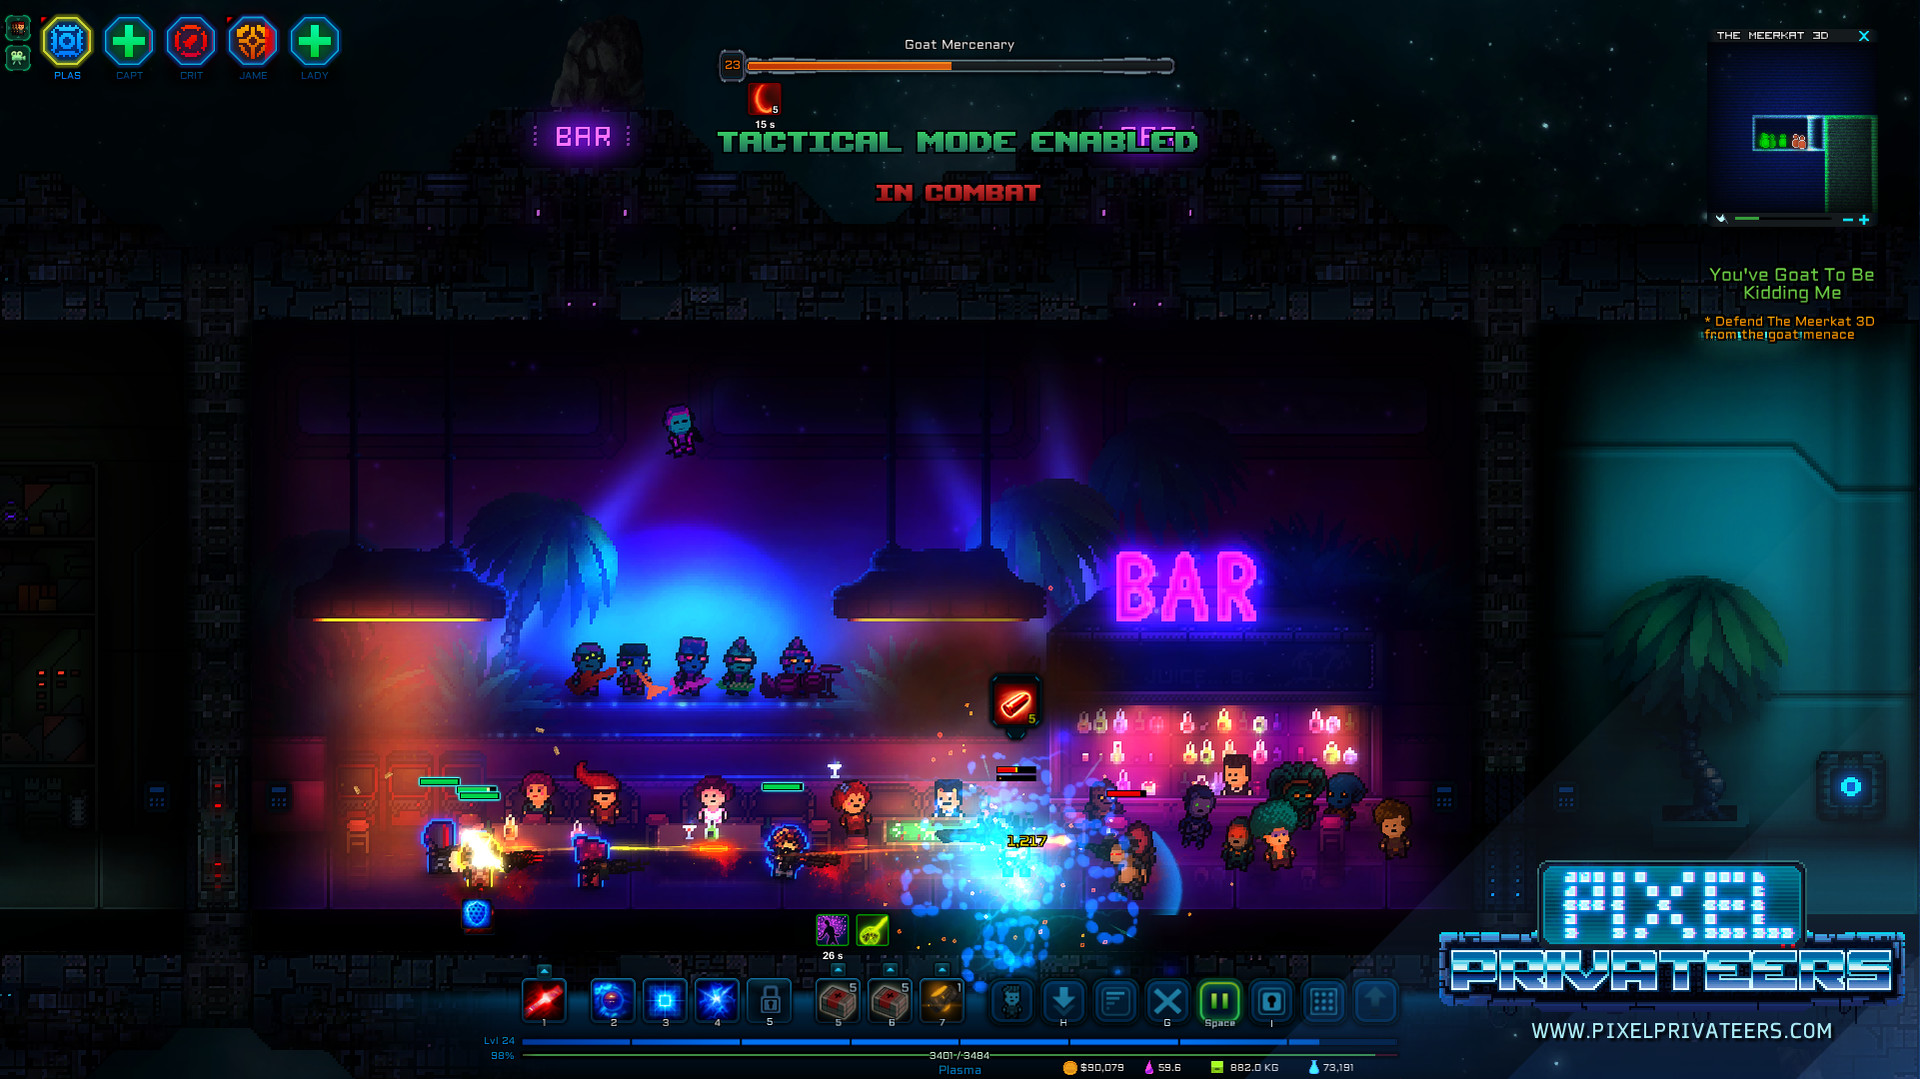 Pixel Privateers (Steam Global Account)